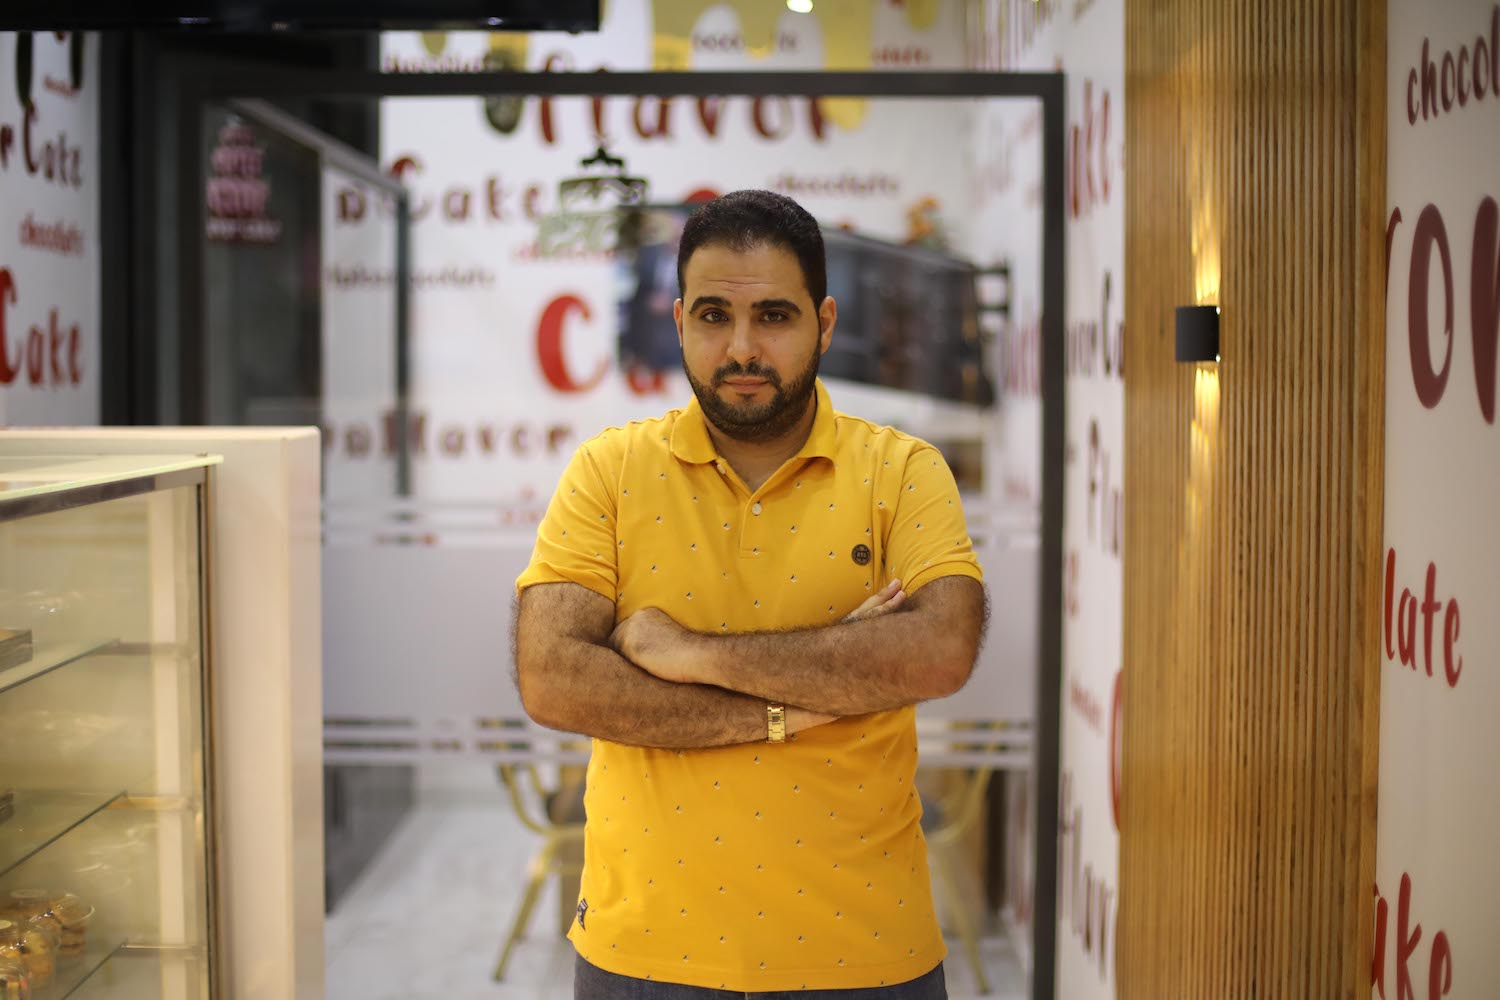 Baraa Rantisi posing at Flavor Cake, the bakery he owns in Gaza City which suffered losses due to the May war on Gaza, September 2, 2021. (Mohammed Zaanoun)